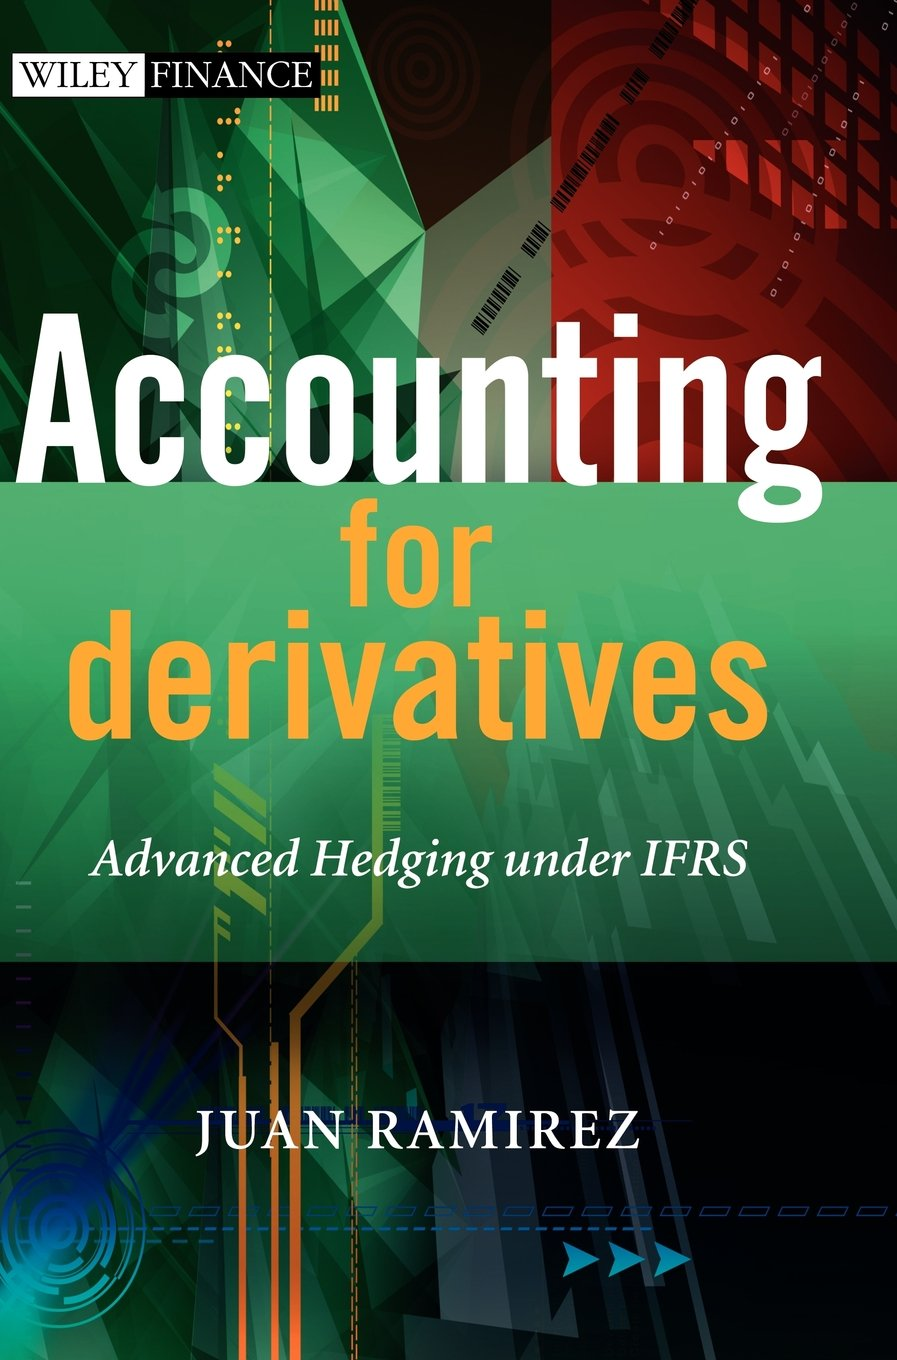 Image OfAccounting For Derivatives: Advanced Hedging Under IFRS (Wiley Finance)